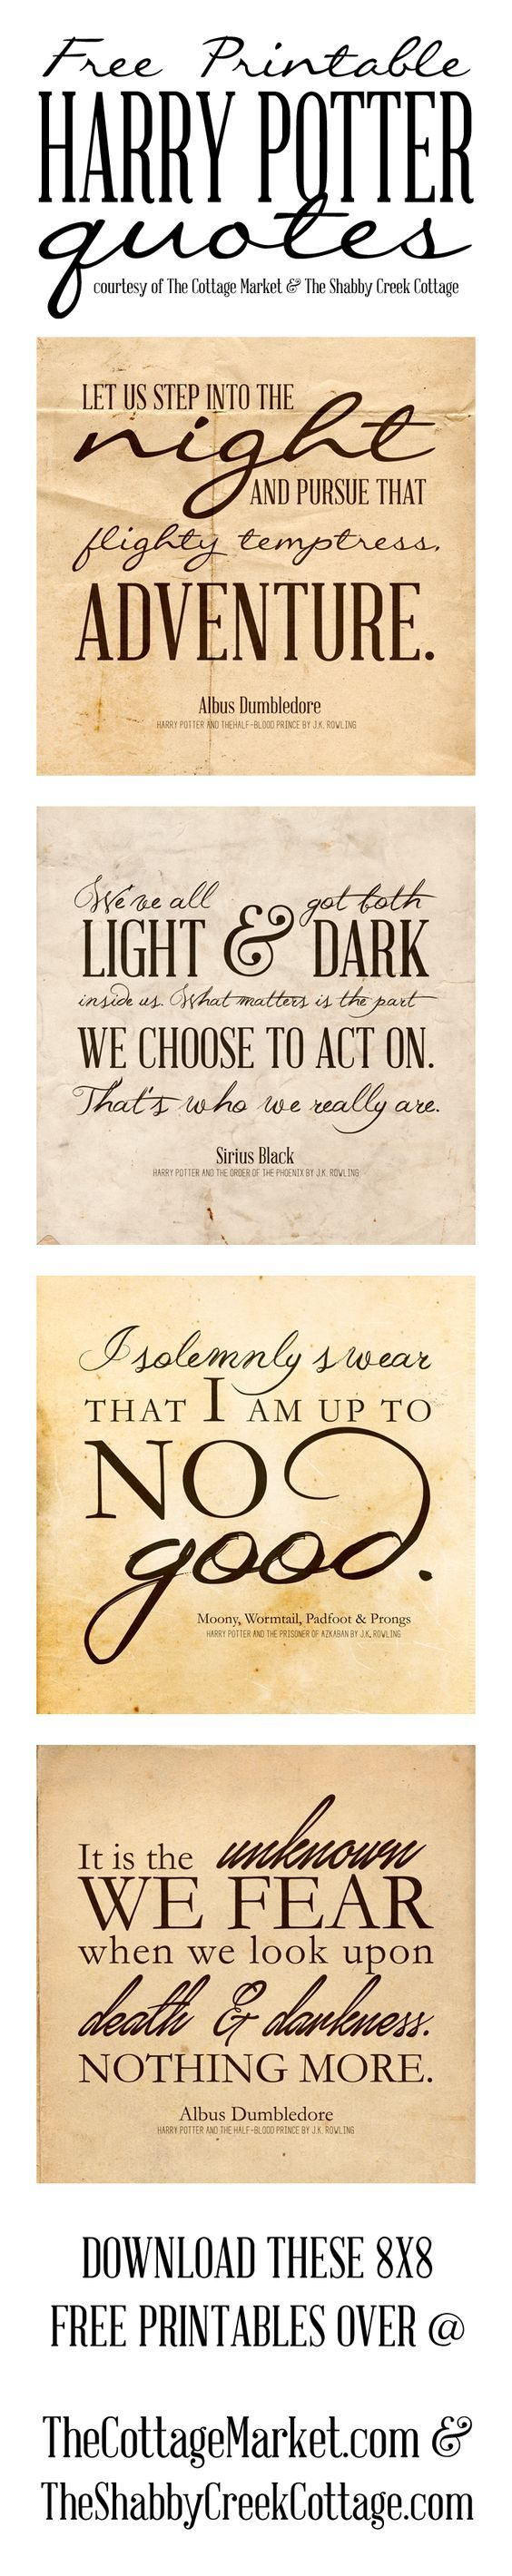 Free Printable Harry Potter Quotes: